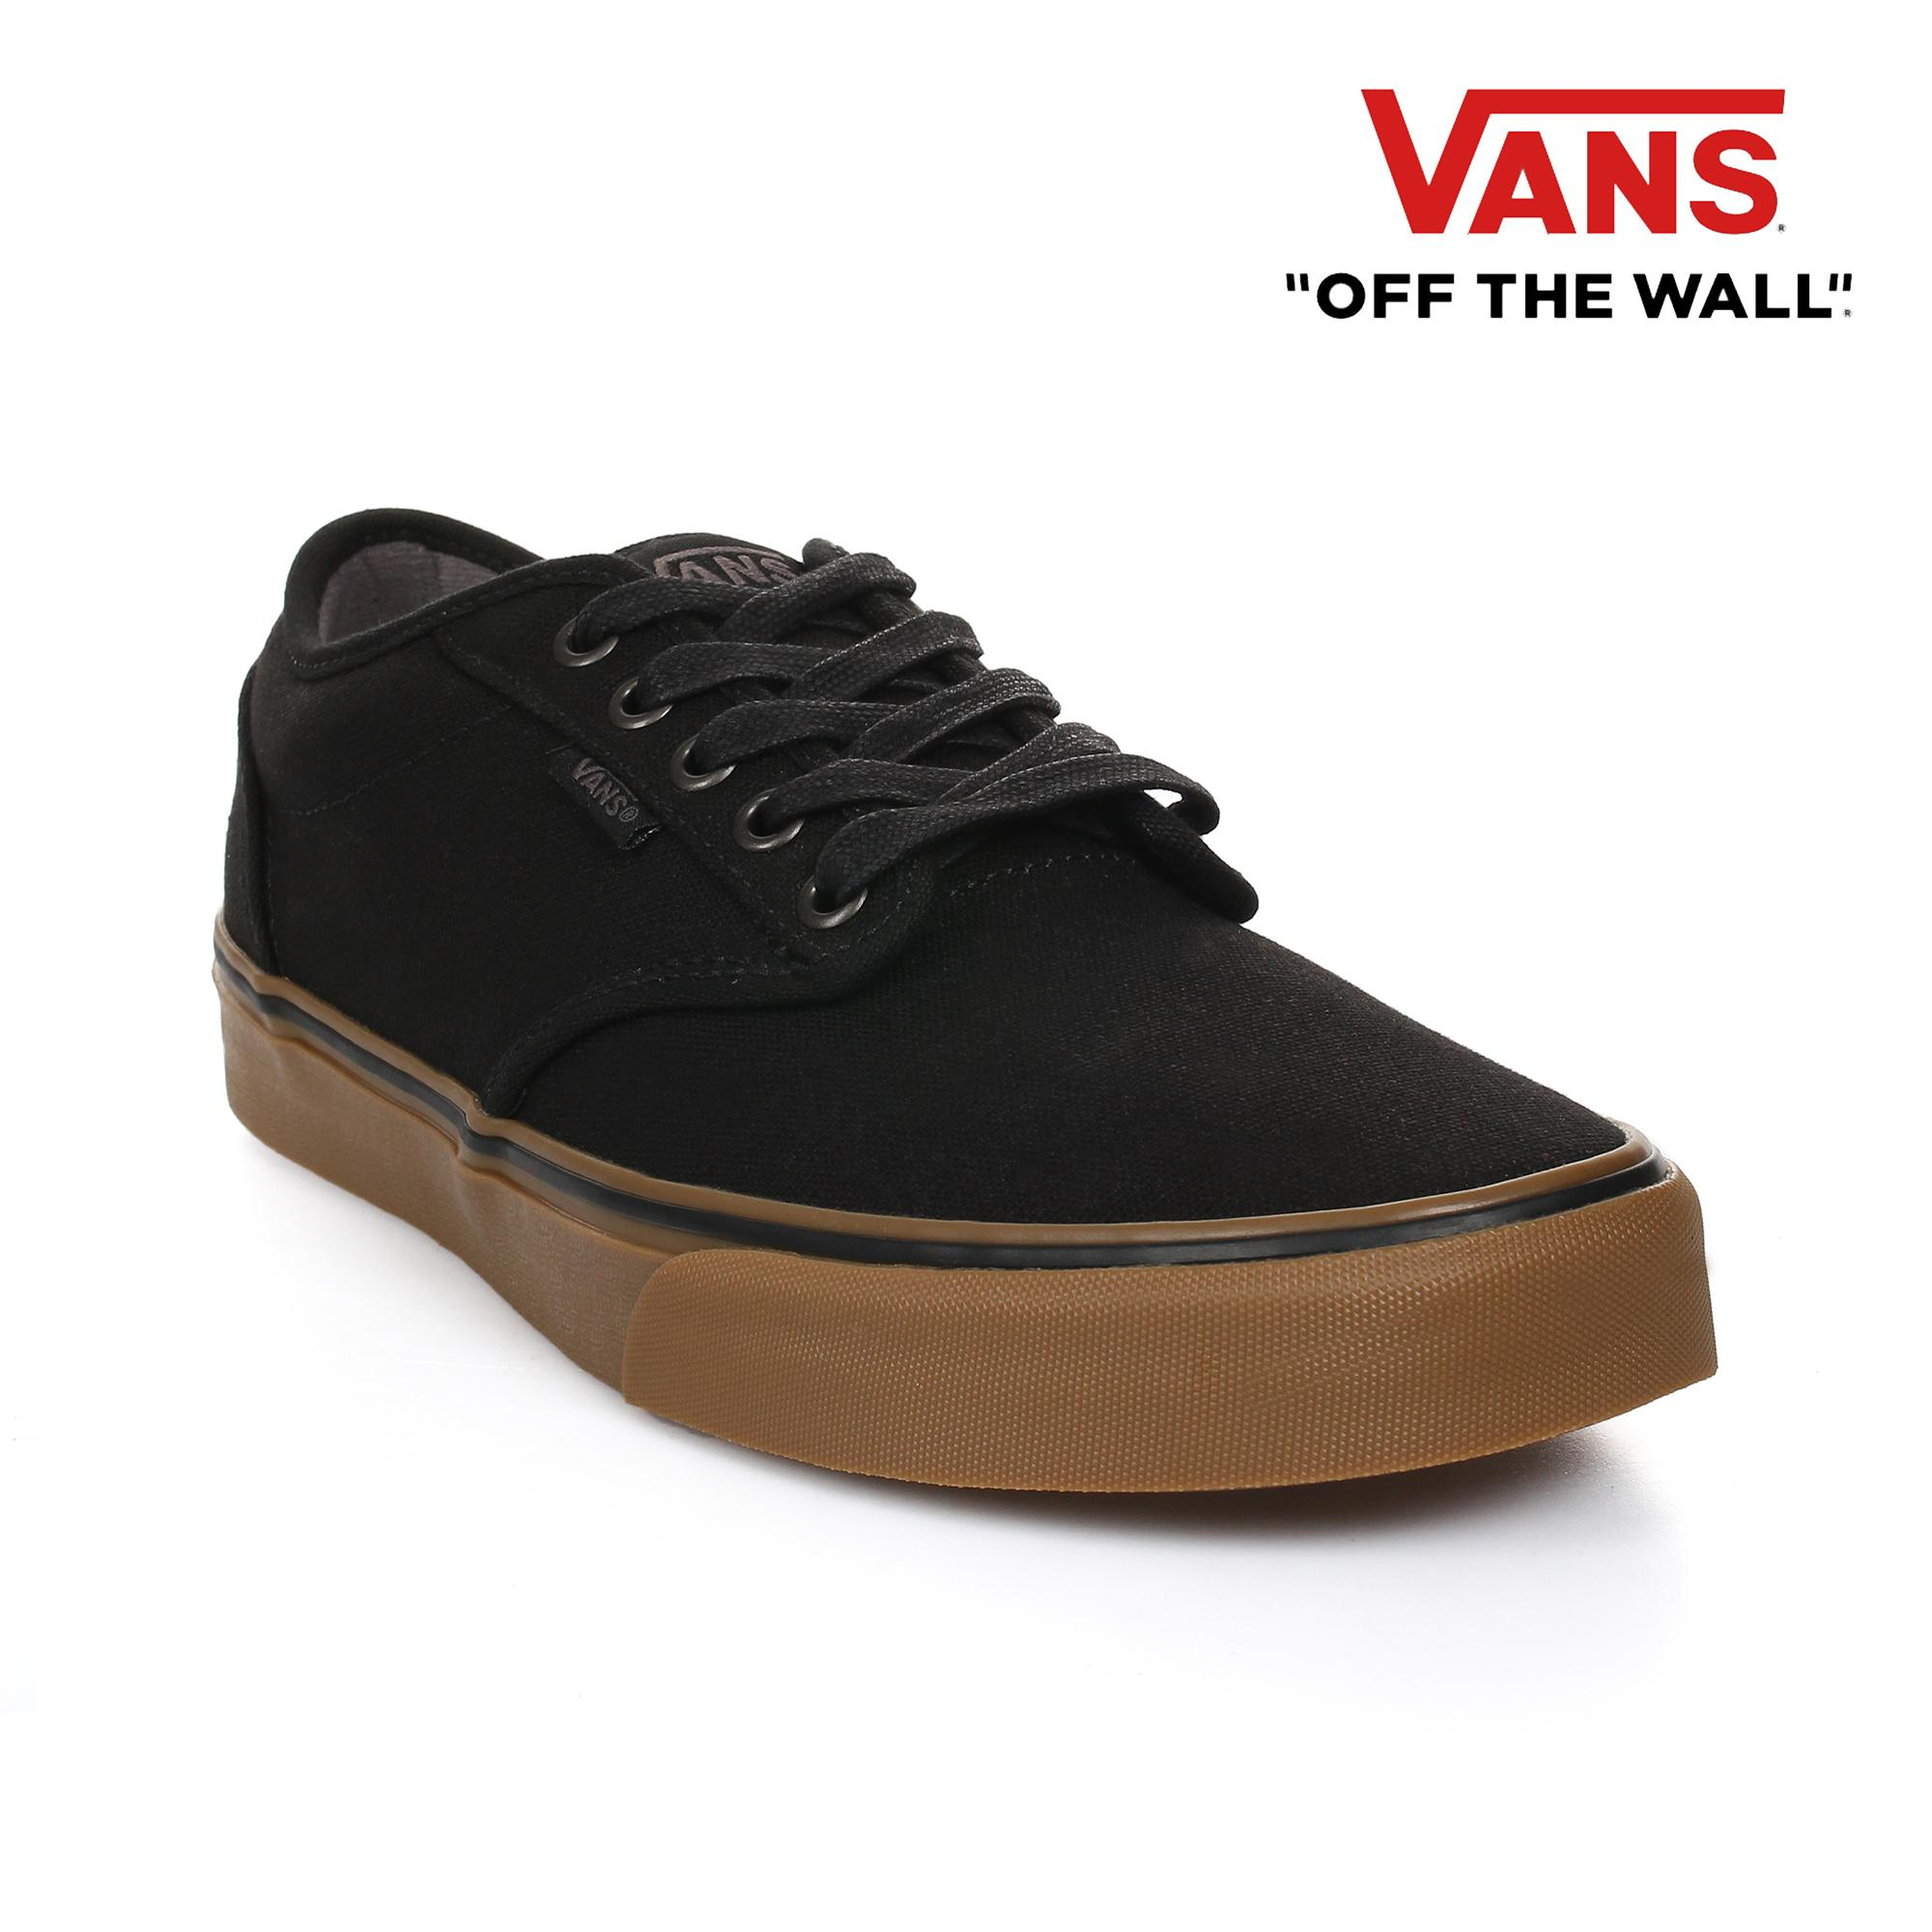 e65c3e9b287 Vans Shoes for Men Philippines - Vans Men s Shoes for sale - prices ...